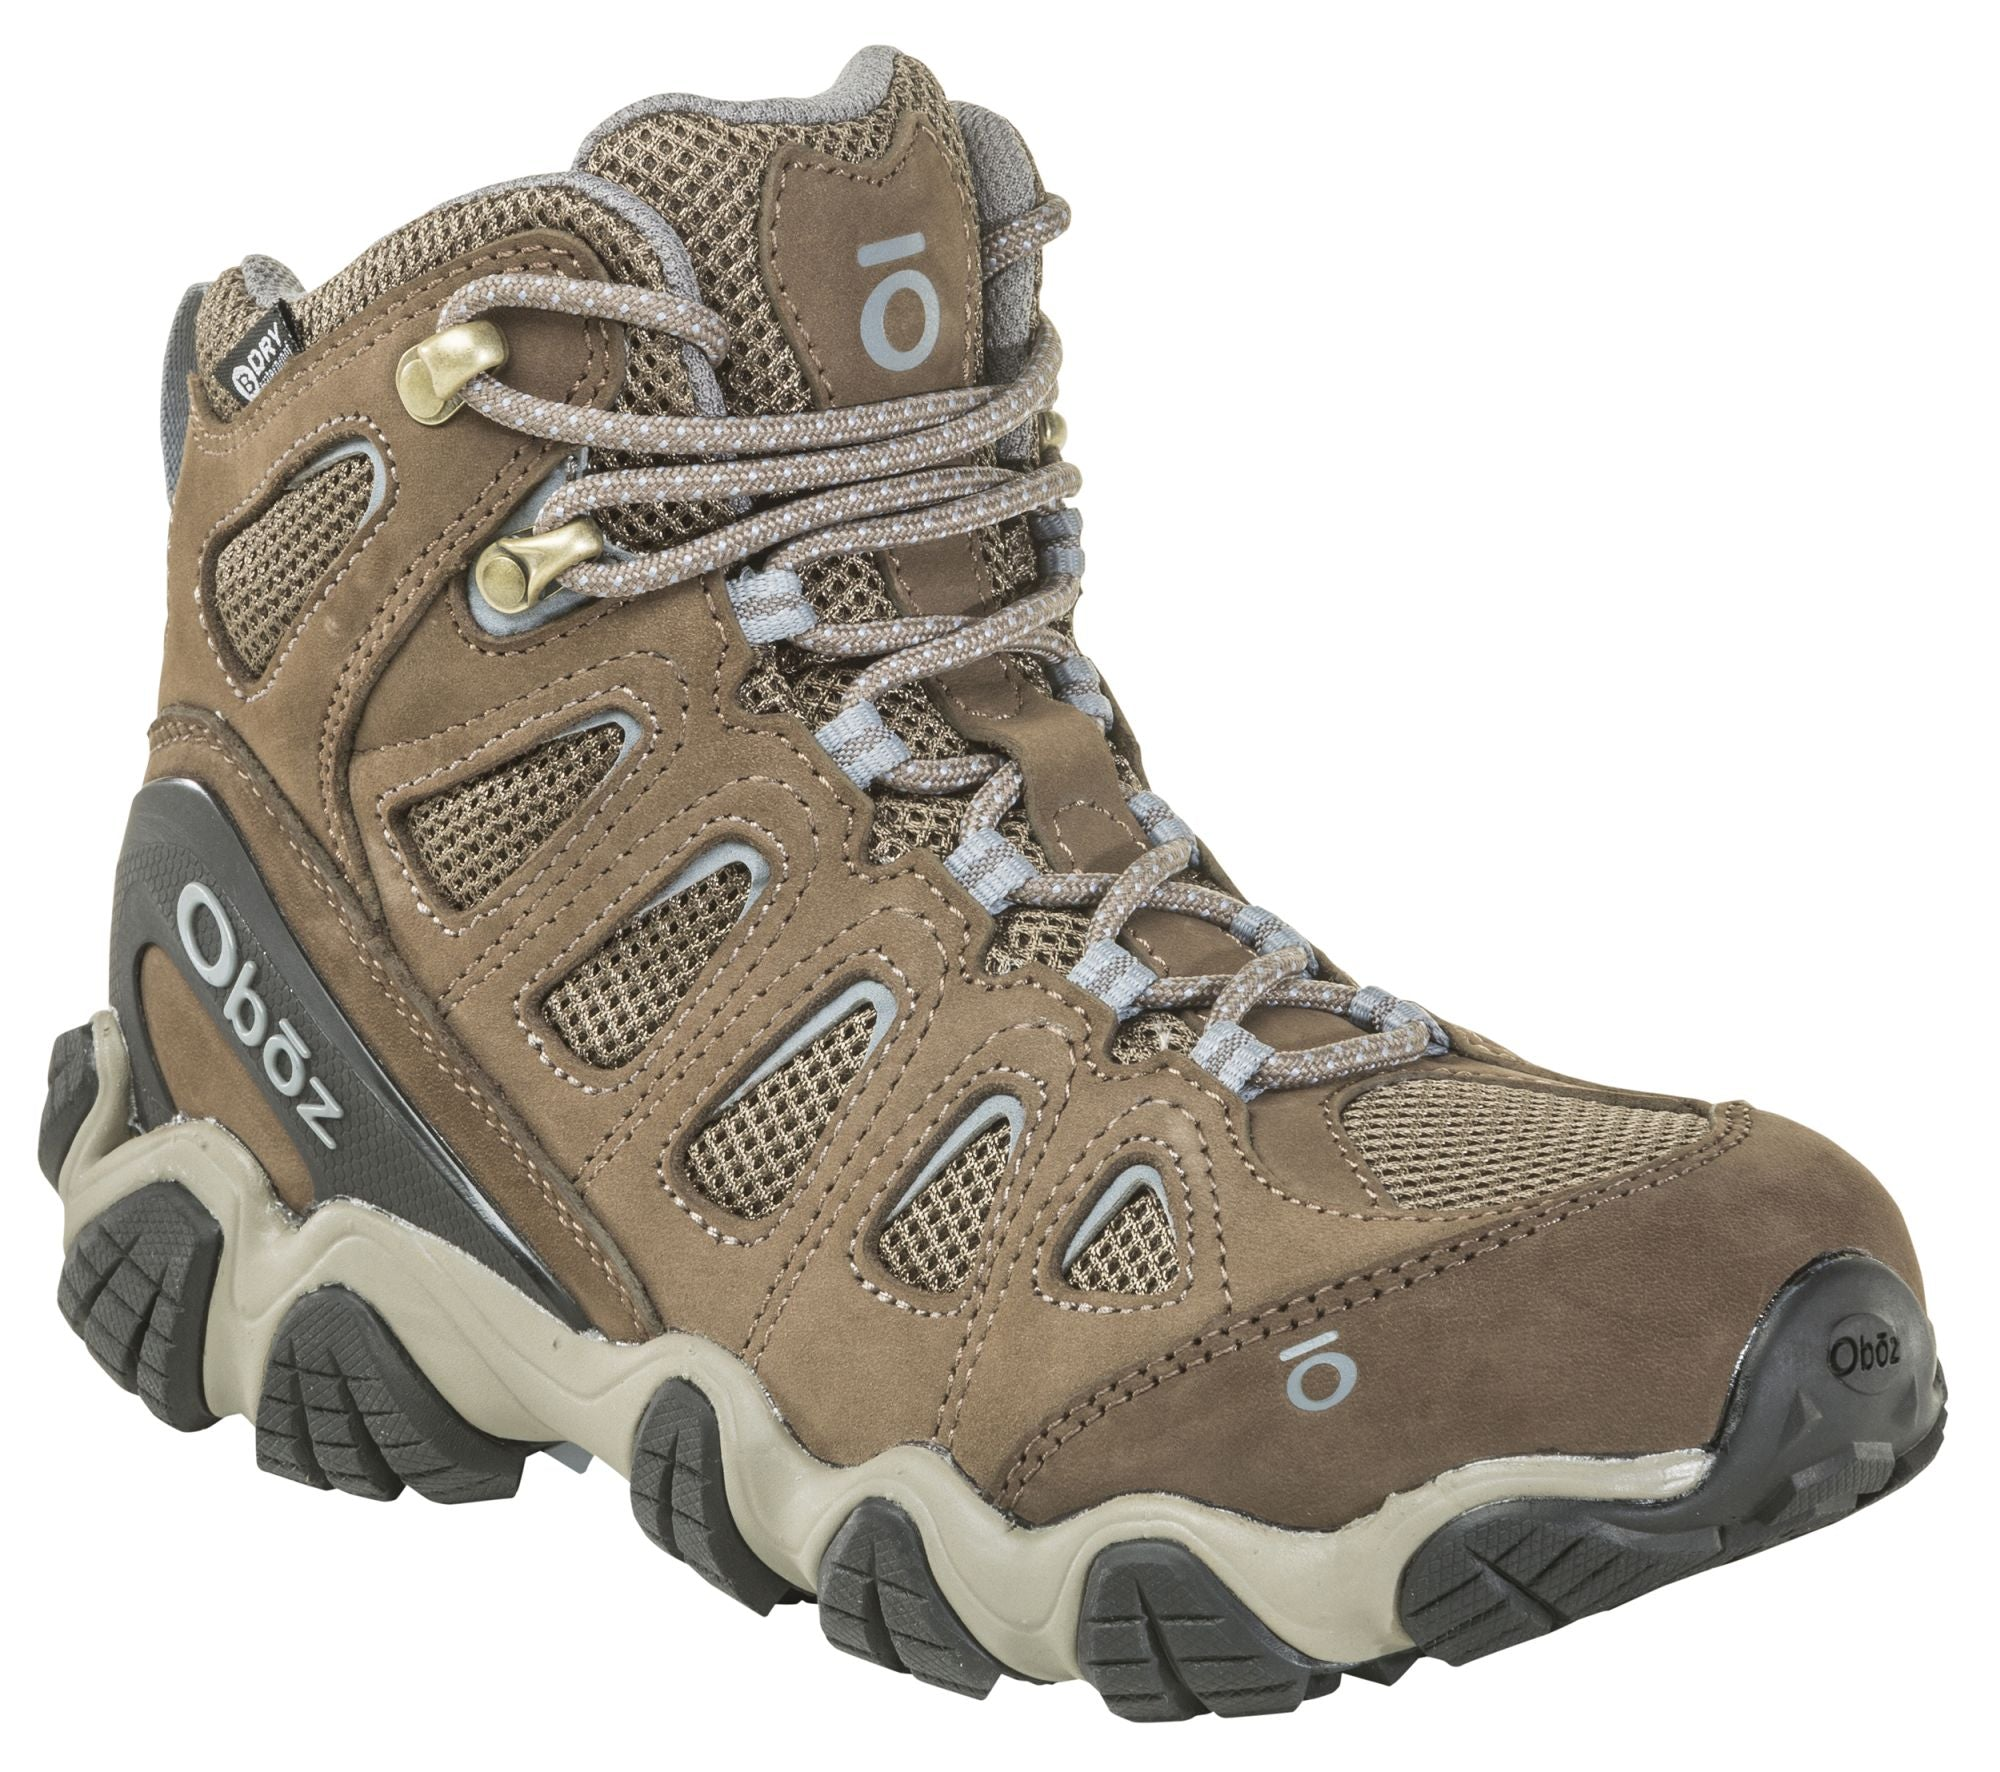 00f2b188cc0 Oboz Sawtooth II Mid B-DRY Hiking Boot - Women's